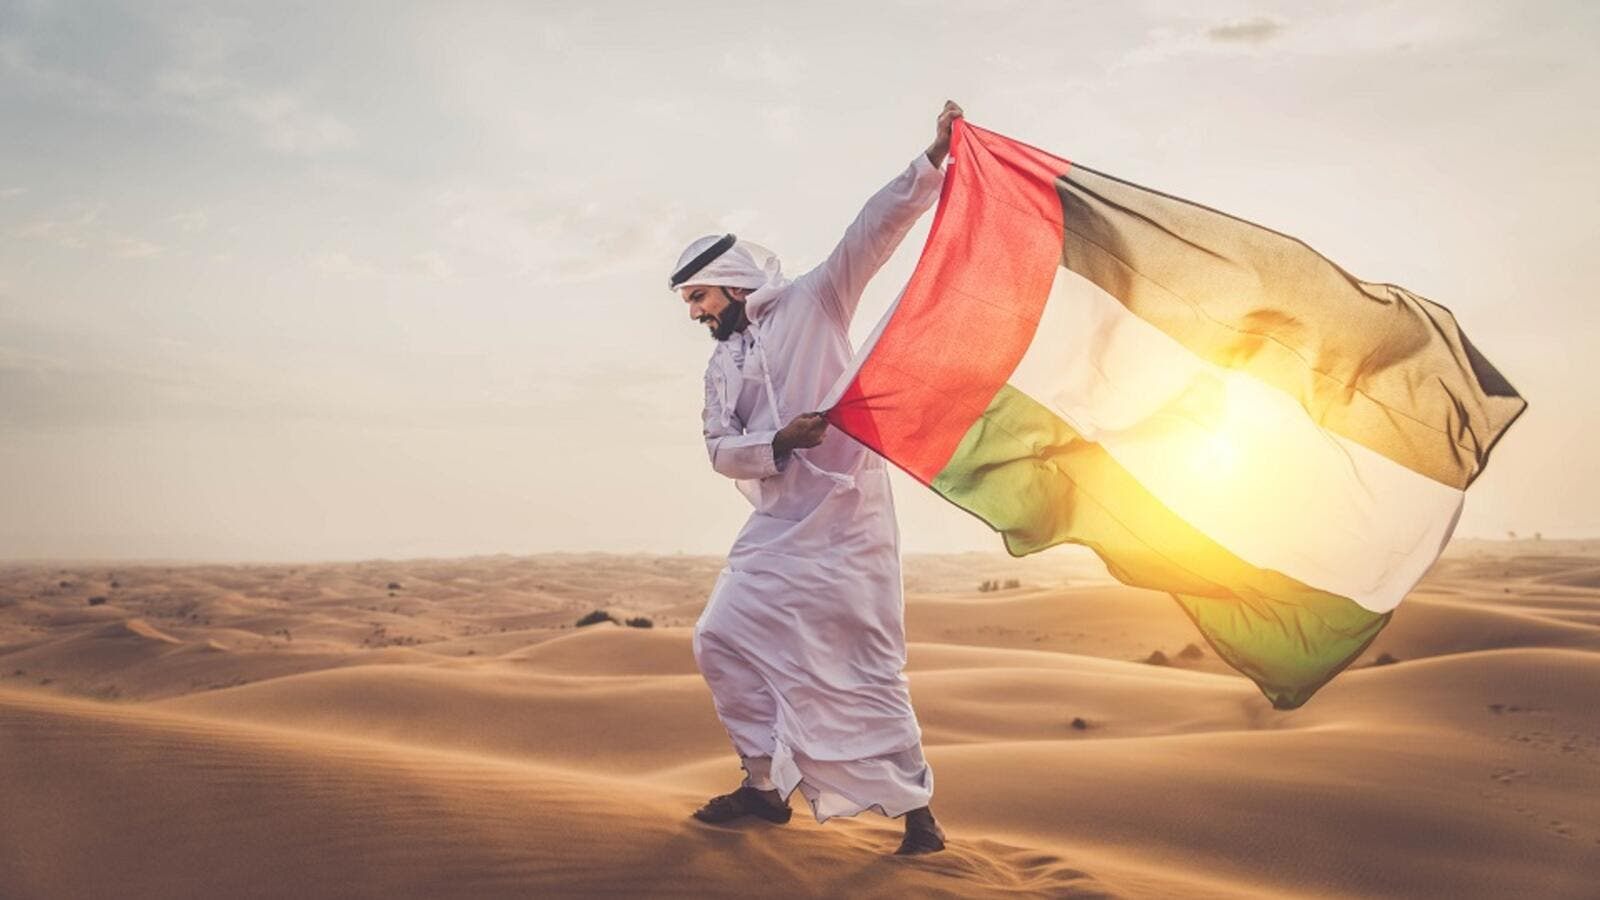 Emiratis will be given priority for jobs in certain sectors. (Shutterstock)